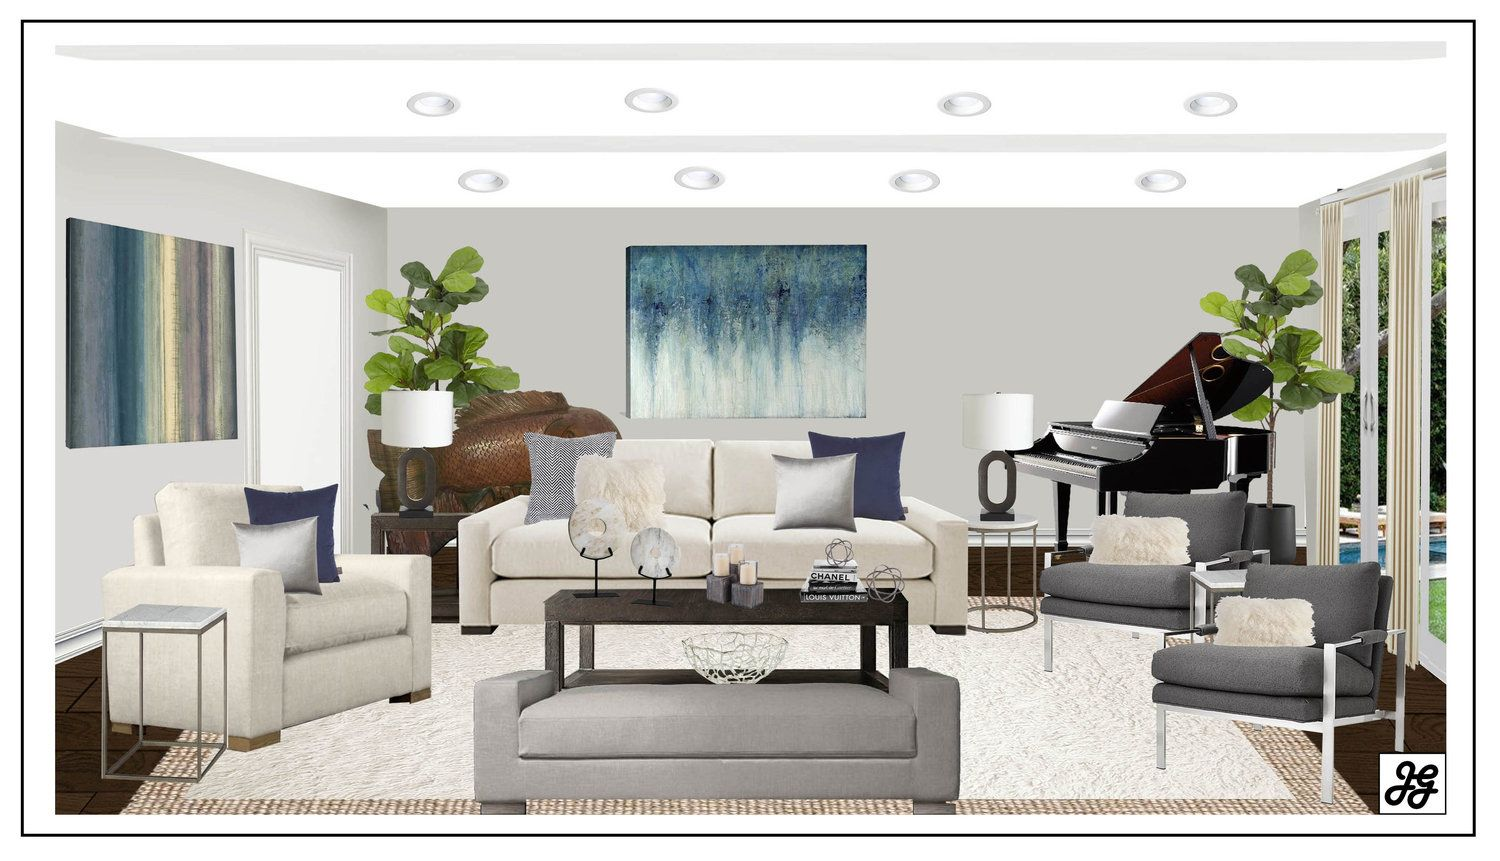 Living Room Design Online Alluring Contemporary Living Room Design Board Modern Farmhouse Living Room Inspiration Design